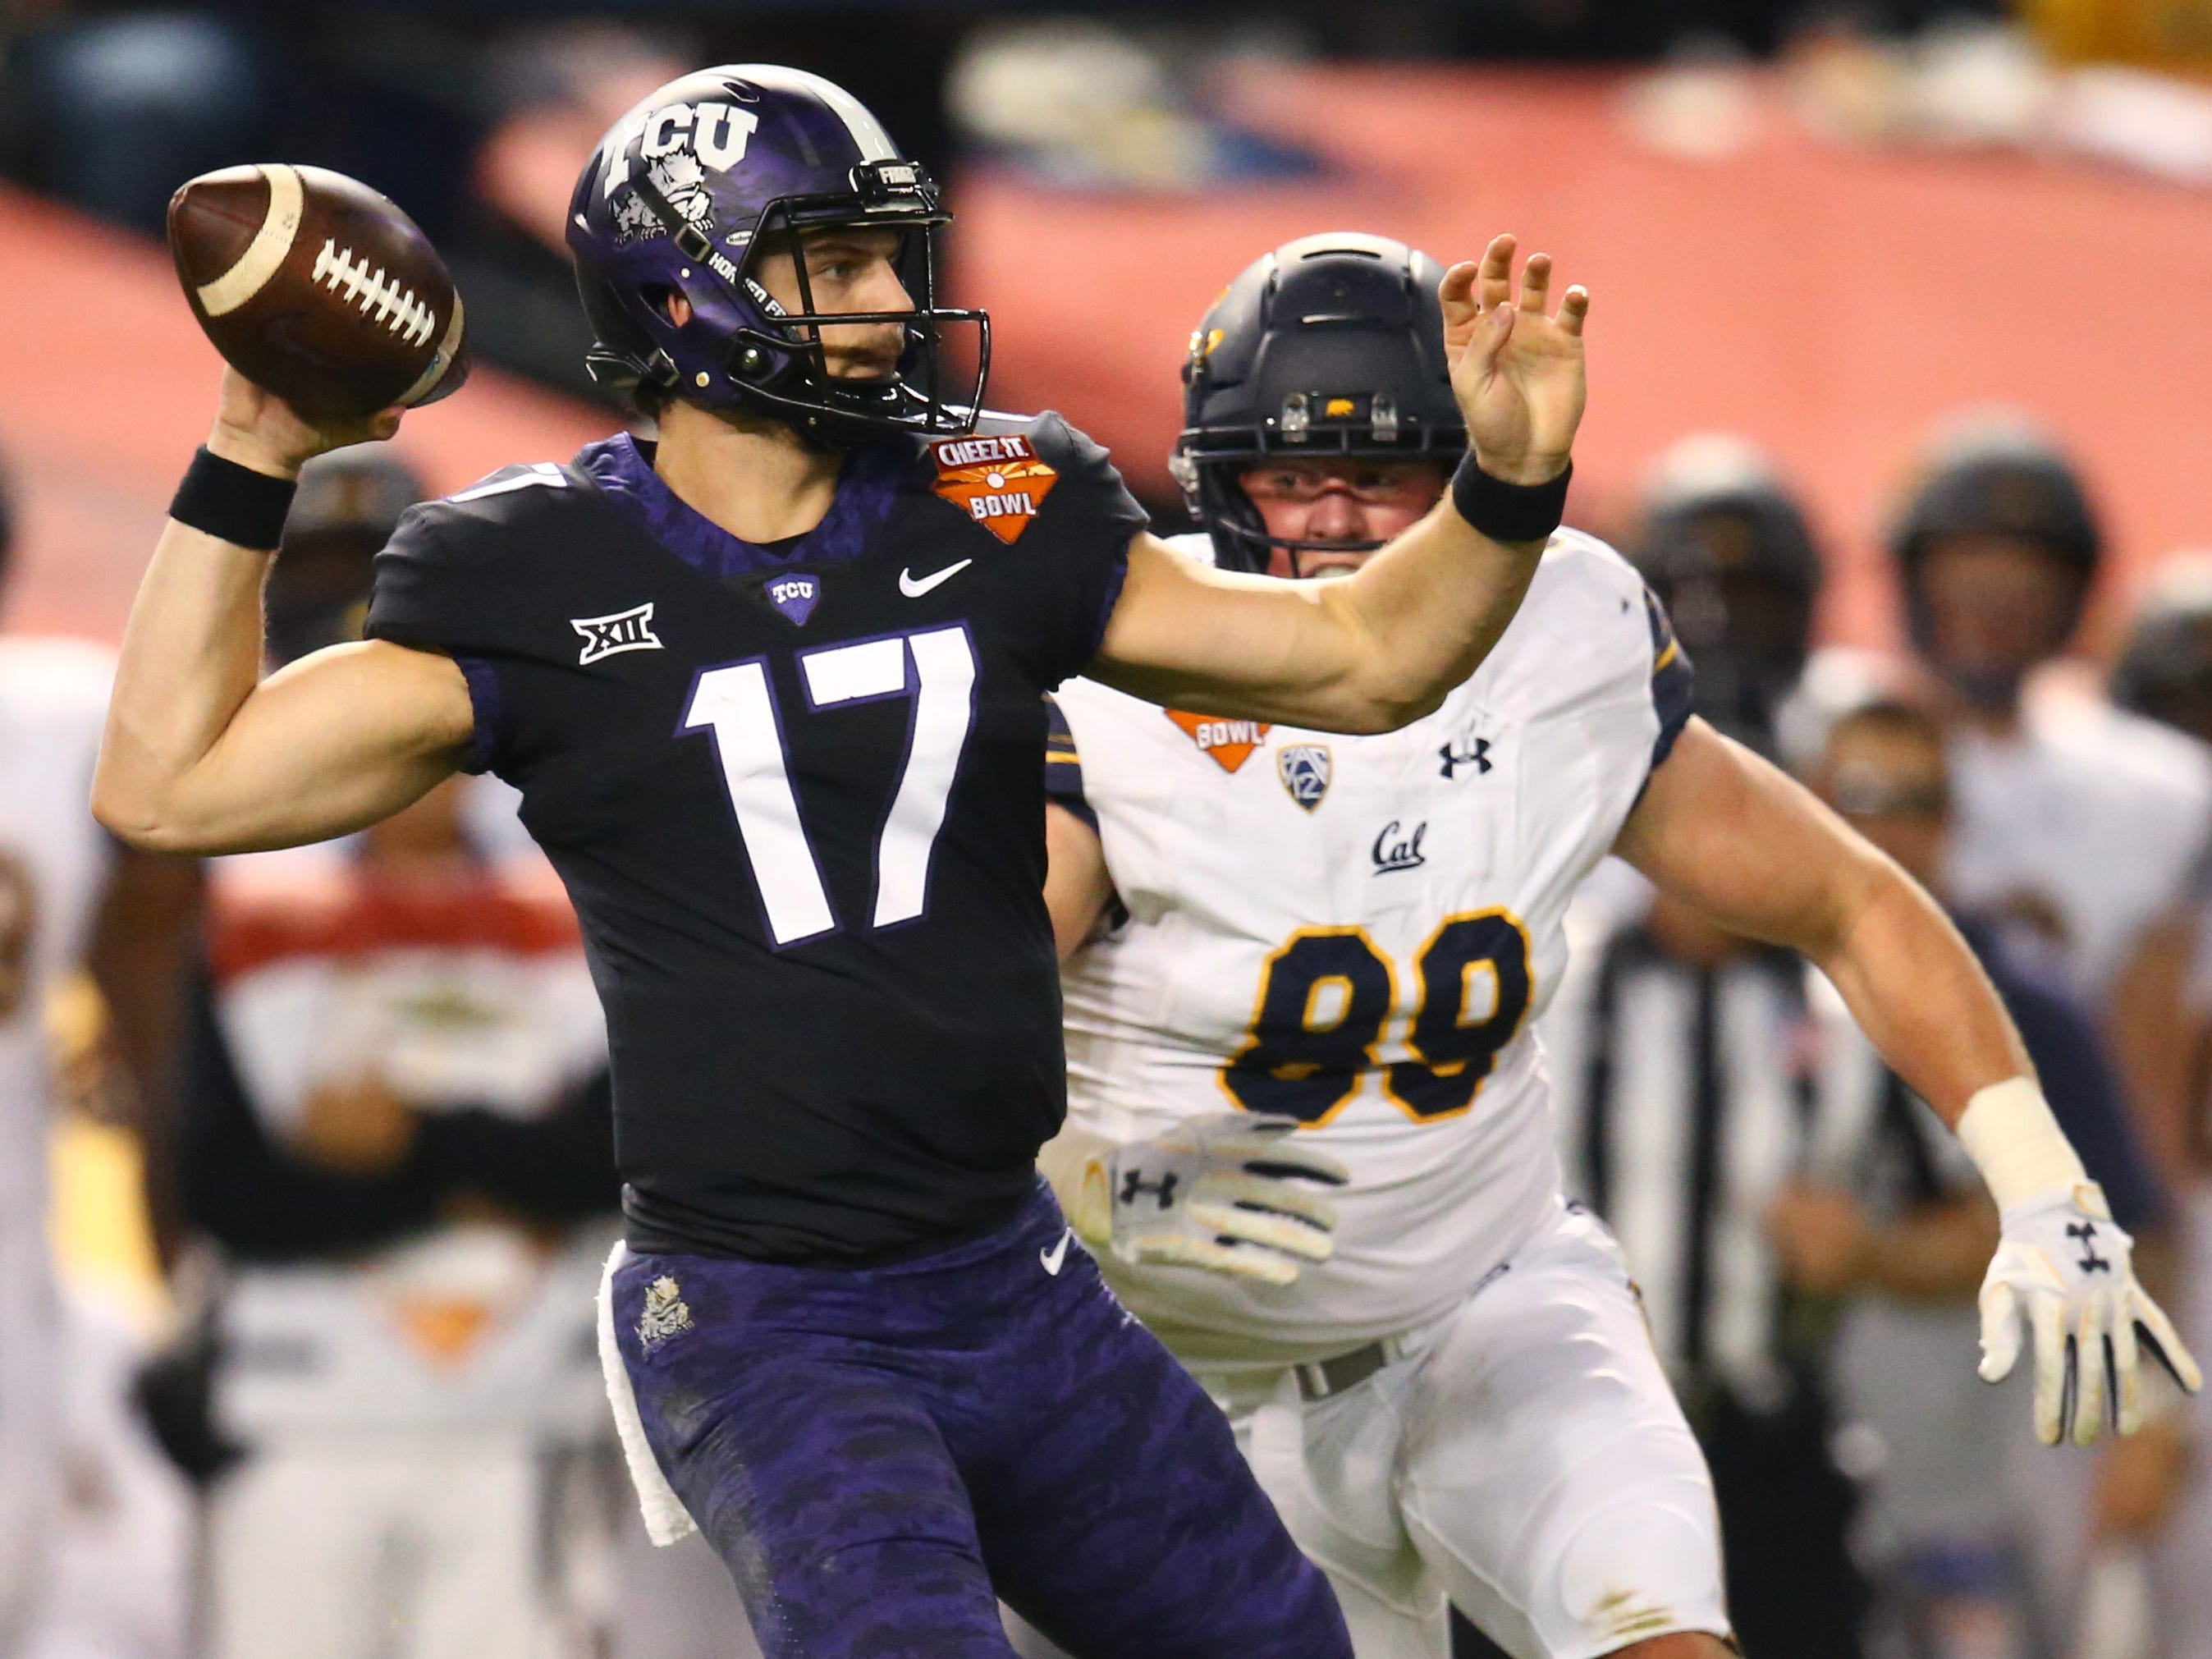 TCU quarterback Grayson Muehlstein throws a pass against California in the Cheez-It Bowl at Chase Field. Muehlstein threw four interceptions in the game, which the Horned Frogs won, 10-7, in overtime.